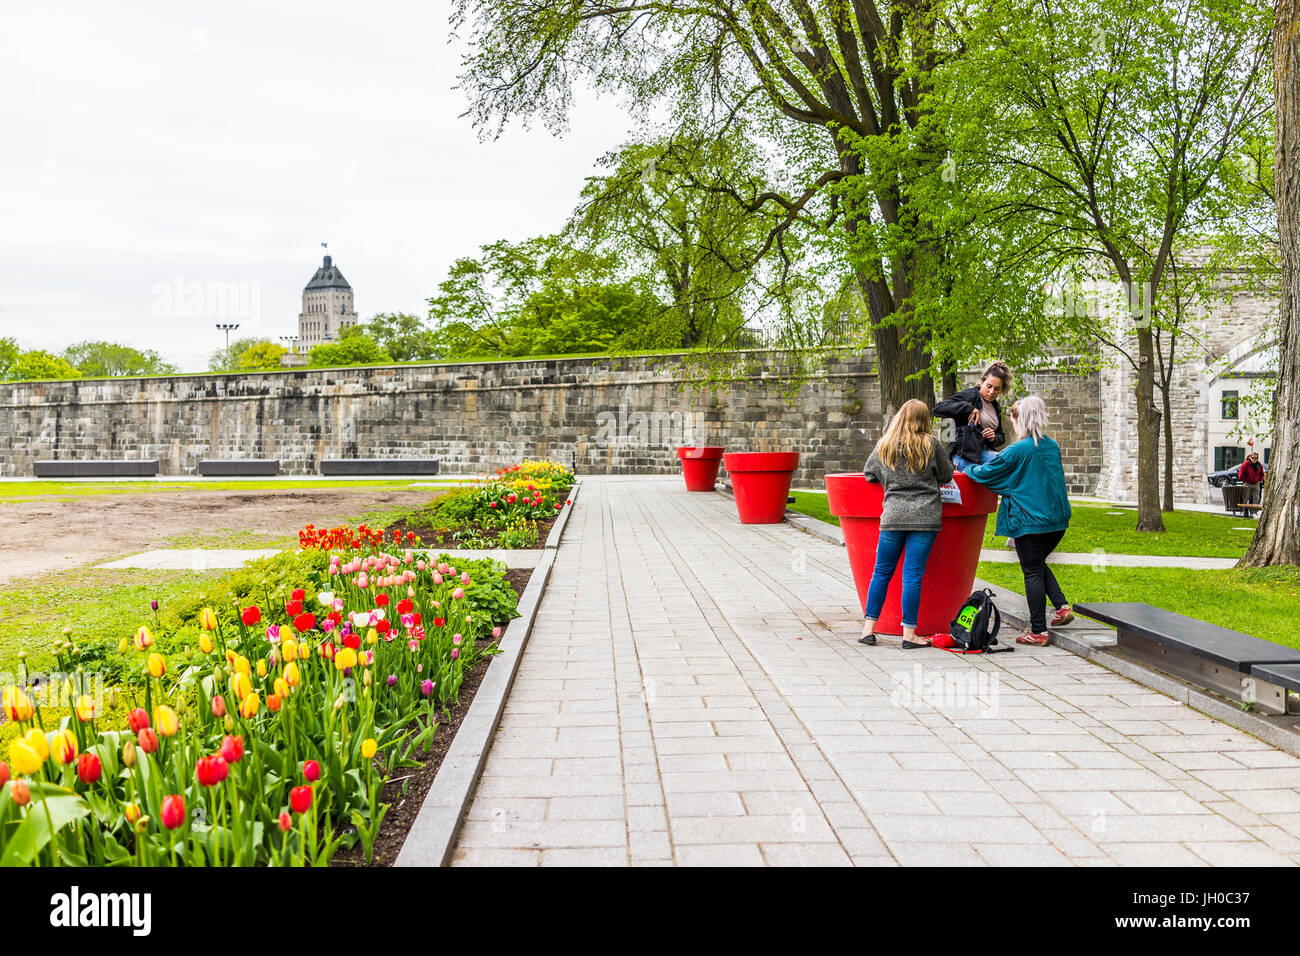 Quebec City, Canada - May 29, 2017: Green grass fields plains in park with fortifications stone wall and people - Stock Image